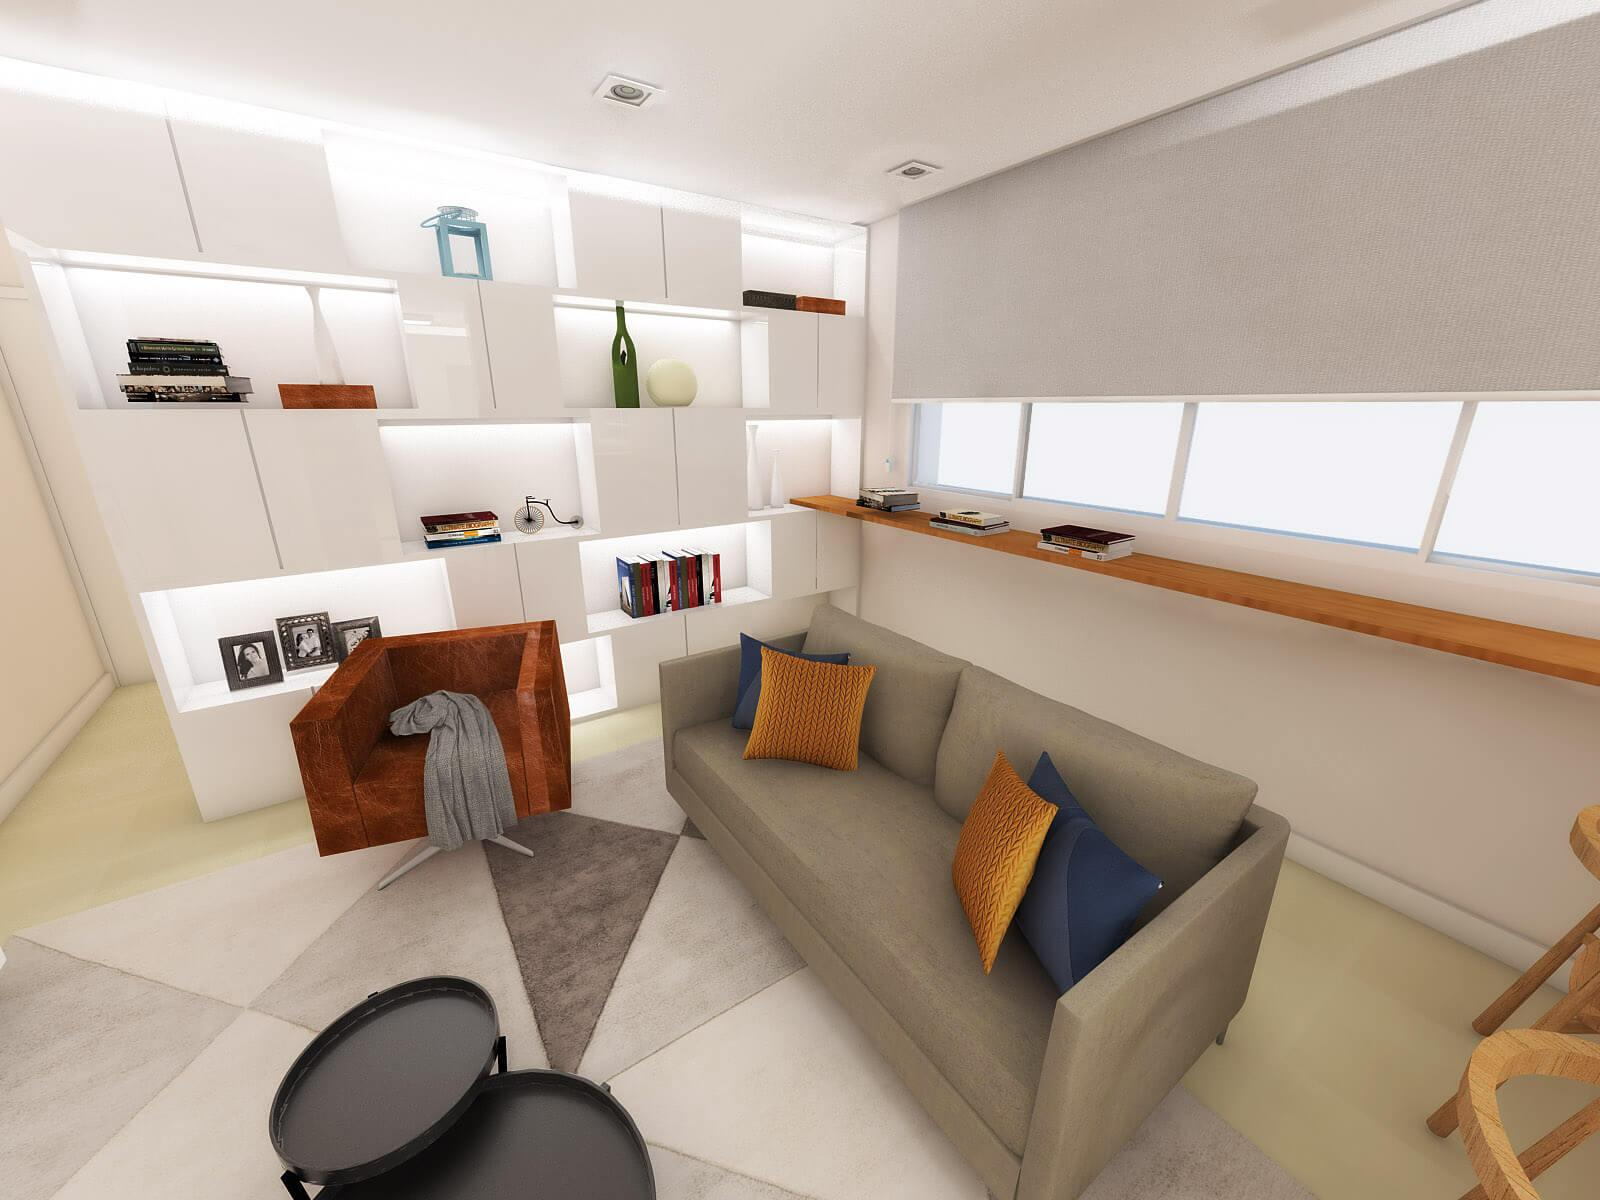 3D view of the living room of the H&C apartment, reflecting the couple's contemporary and elegant style